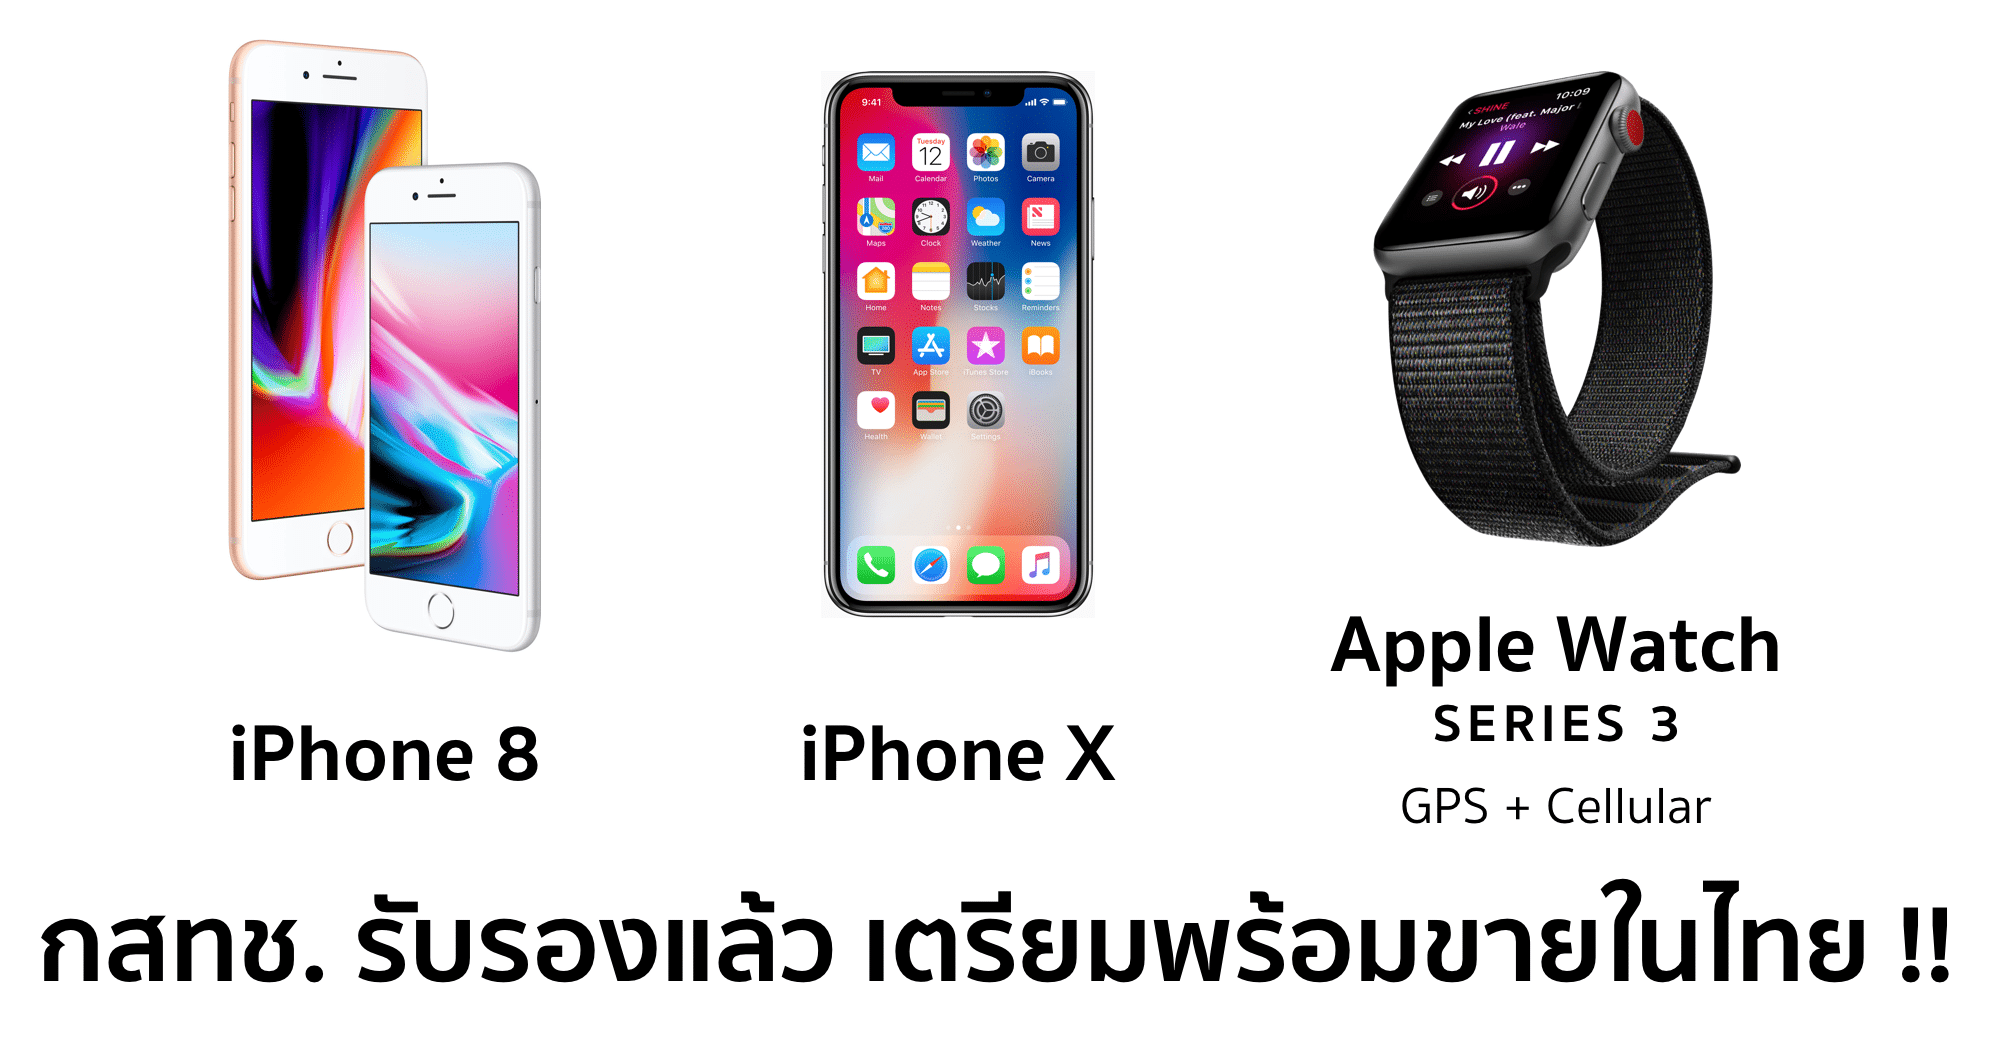 nbtc-approved-iphone-8-8-plus-x-apple-watch-series-3-cellular 1